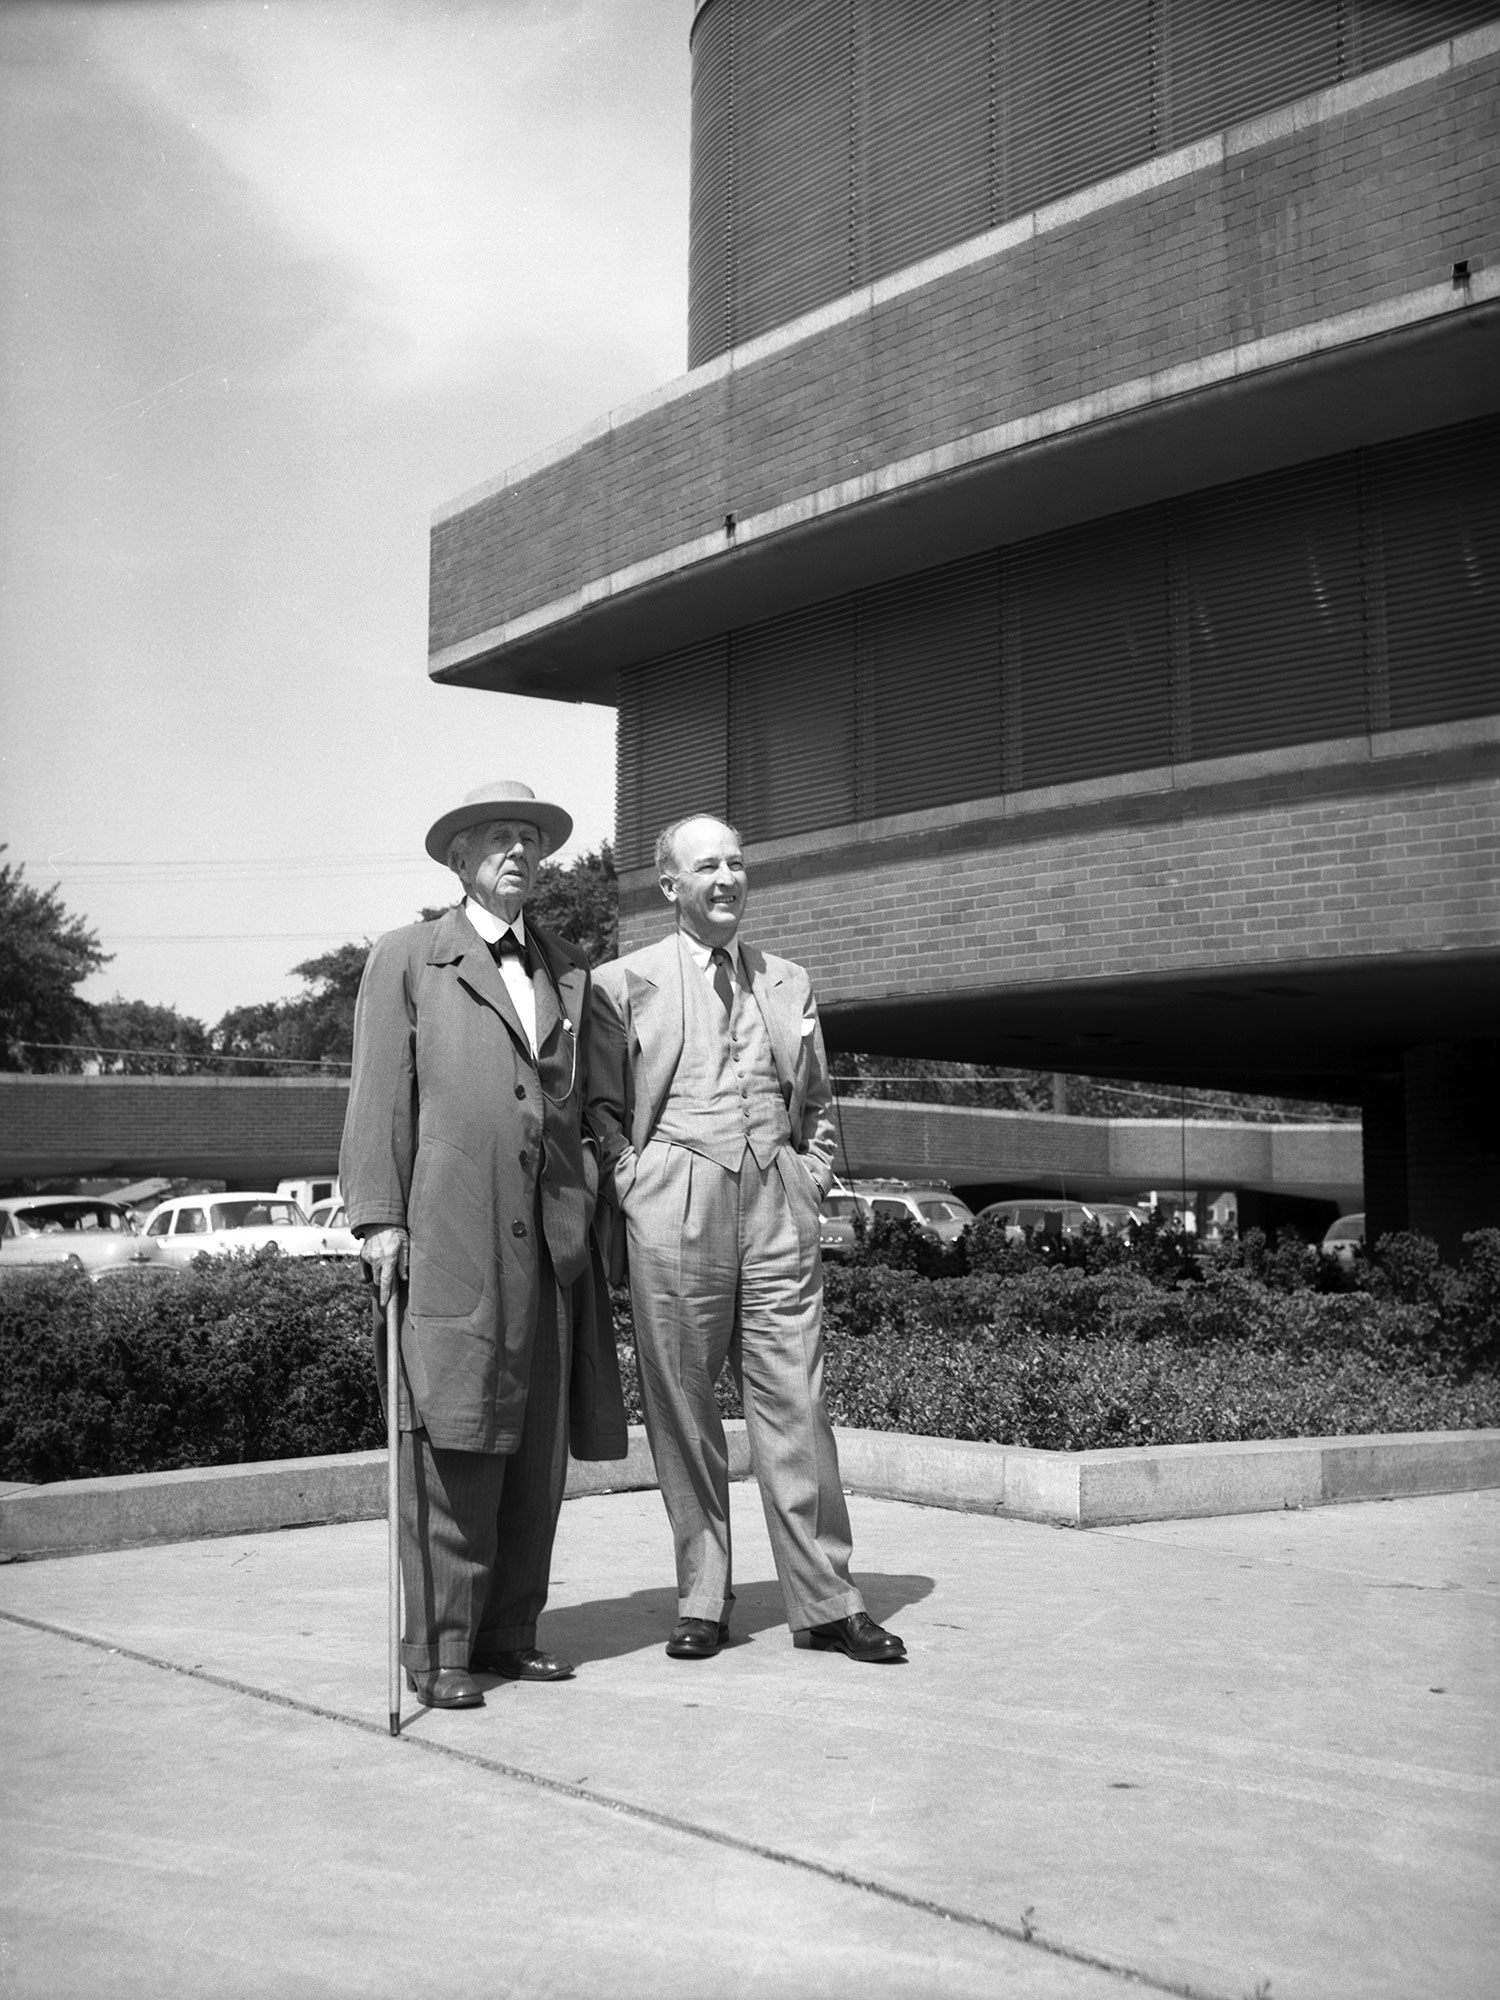 H.F. Johnson, Jr. mit Frank Lloyd Wright